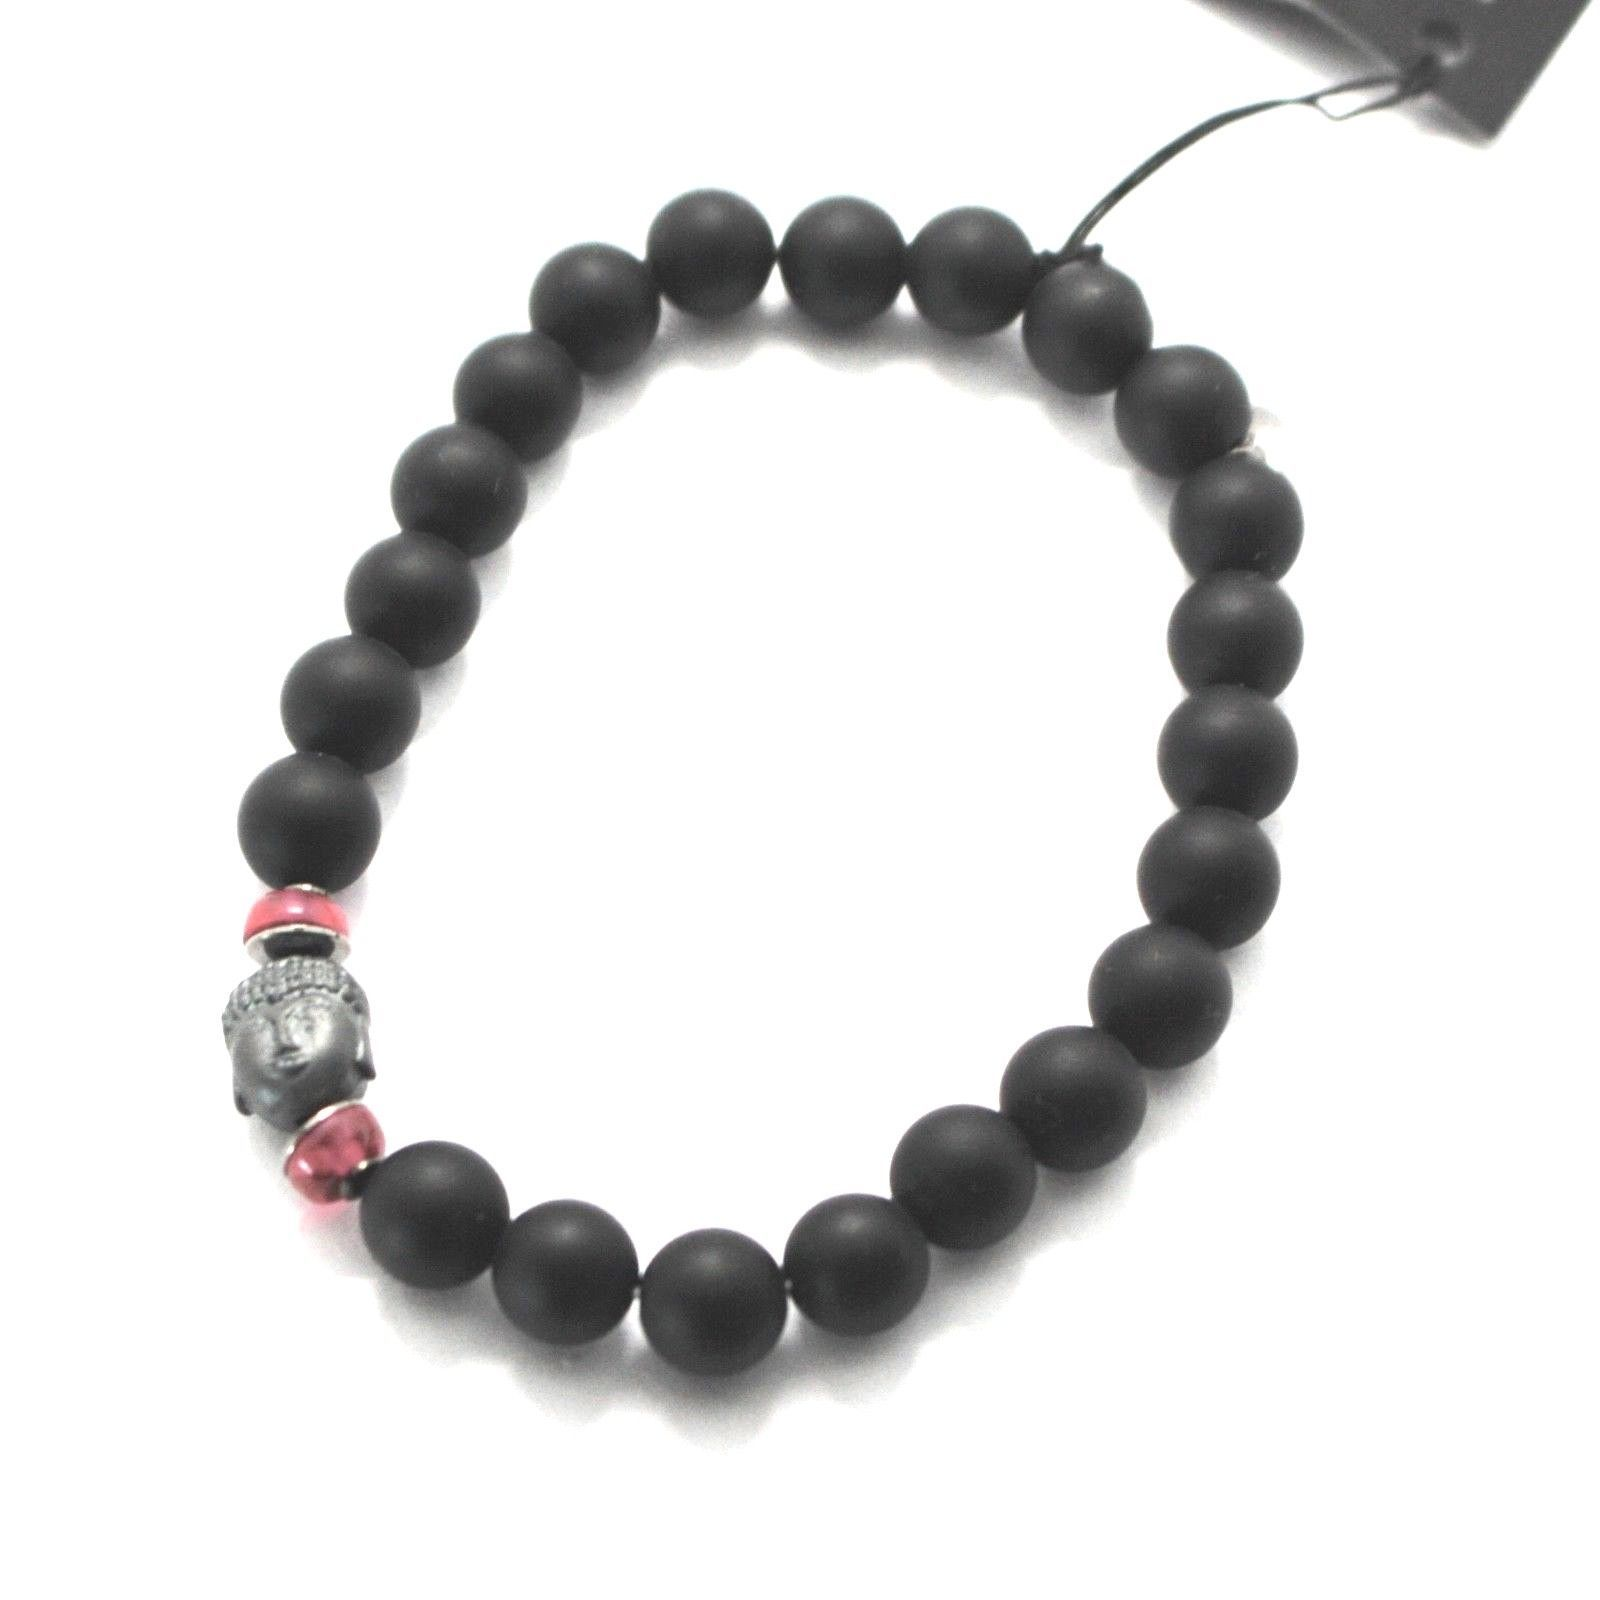 BRACCIALE IN ARGENTO 925 CON EMATITE E ONICE BPR-4 MADE IN ITALY BY MASCHIA